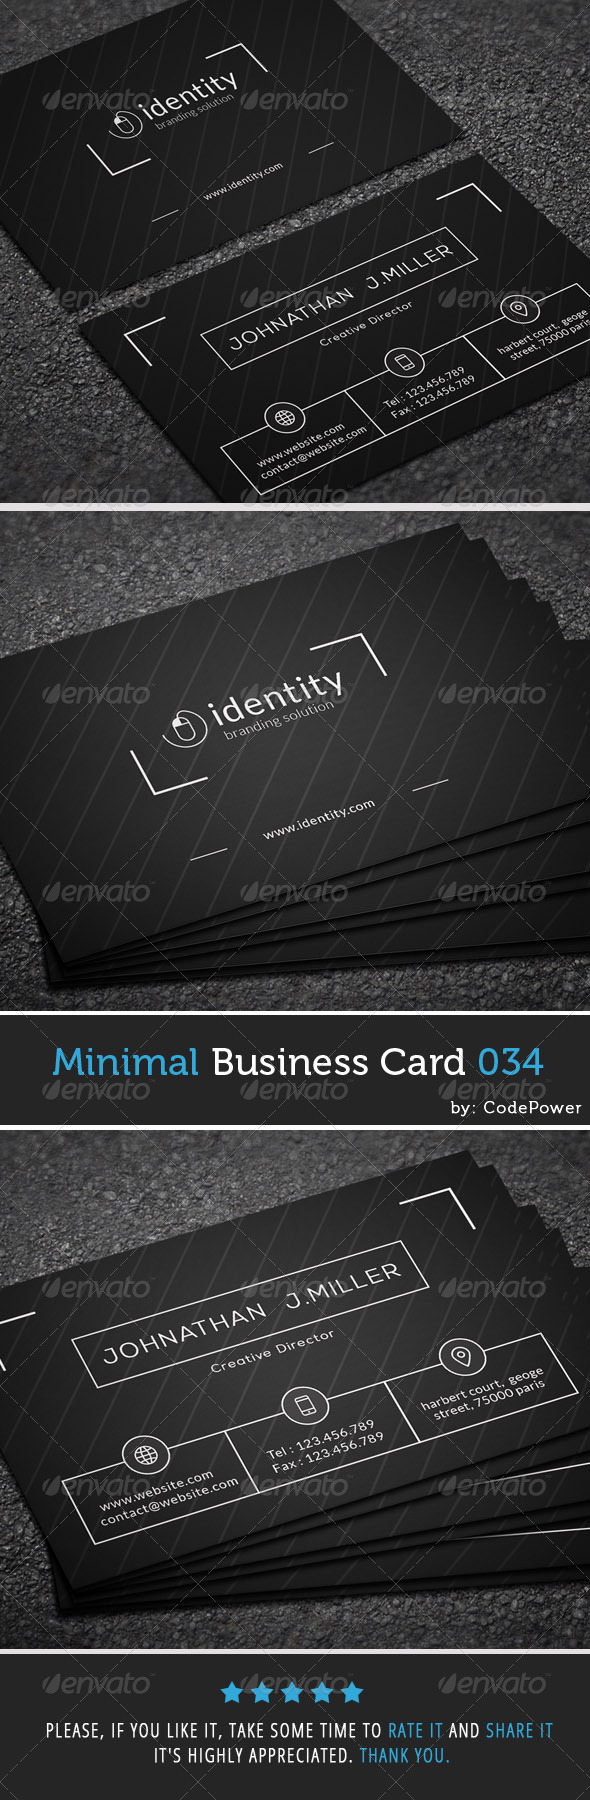 GraphicRiver Minimal Business Card 034 8040118